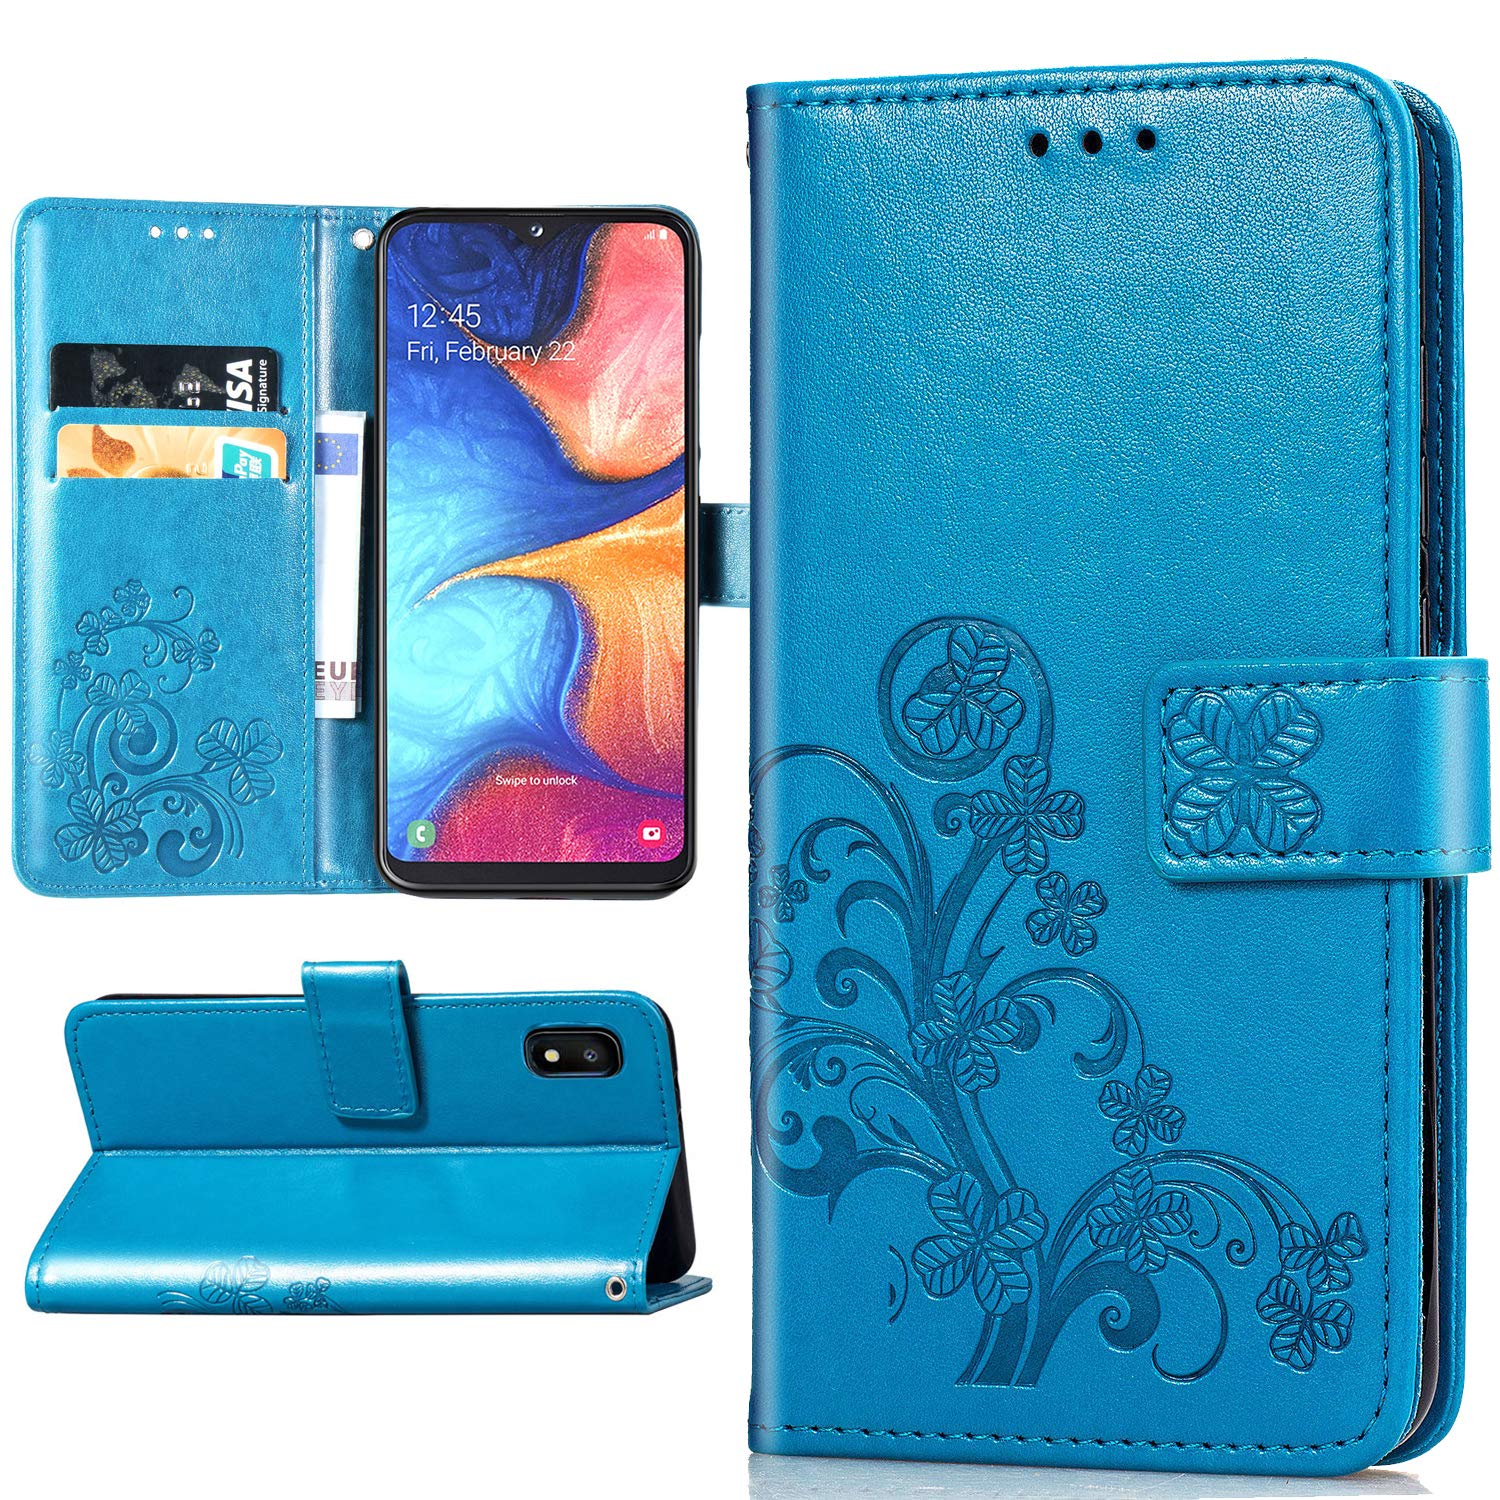 Samsung Galaxy A10E Wallet-Aqua Blue